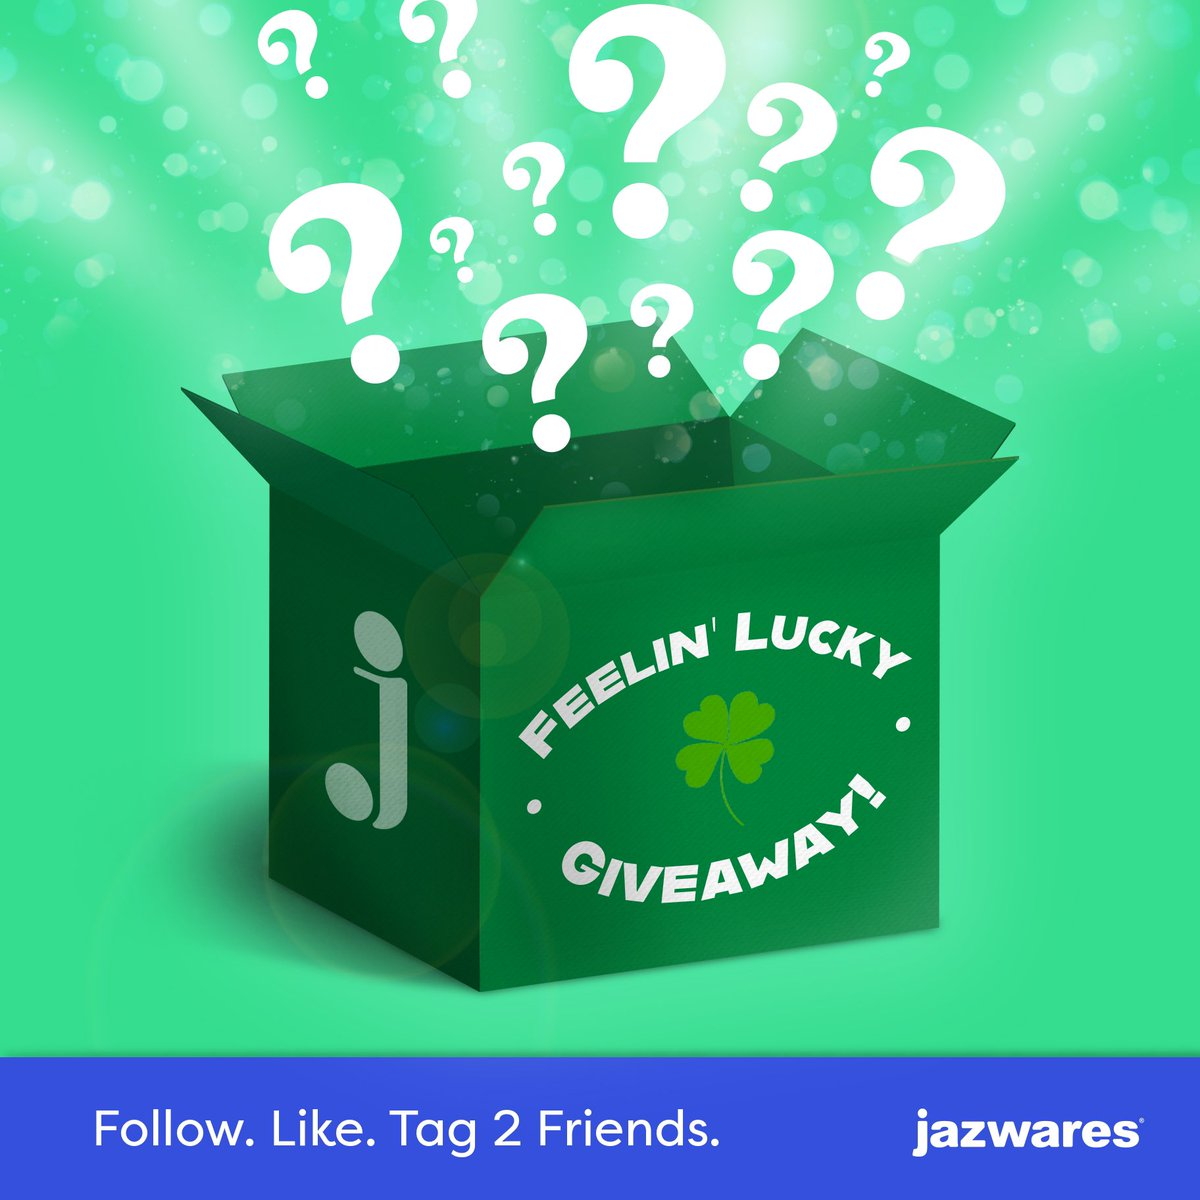 Winner takes all! Like, follow, and tag two friends for the chance to win a mystery box filled with Jazwares goodies! So tell us, are you feelin' lucky 🍀 ?  🛍 One (1) Jazwares Mystery Box 🗓️ Ends 3/17 @ 11:59 pm EST  📣Rules: https://www.jazwares.com/sweepstakes